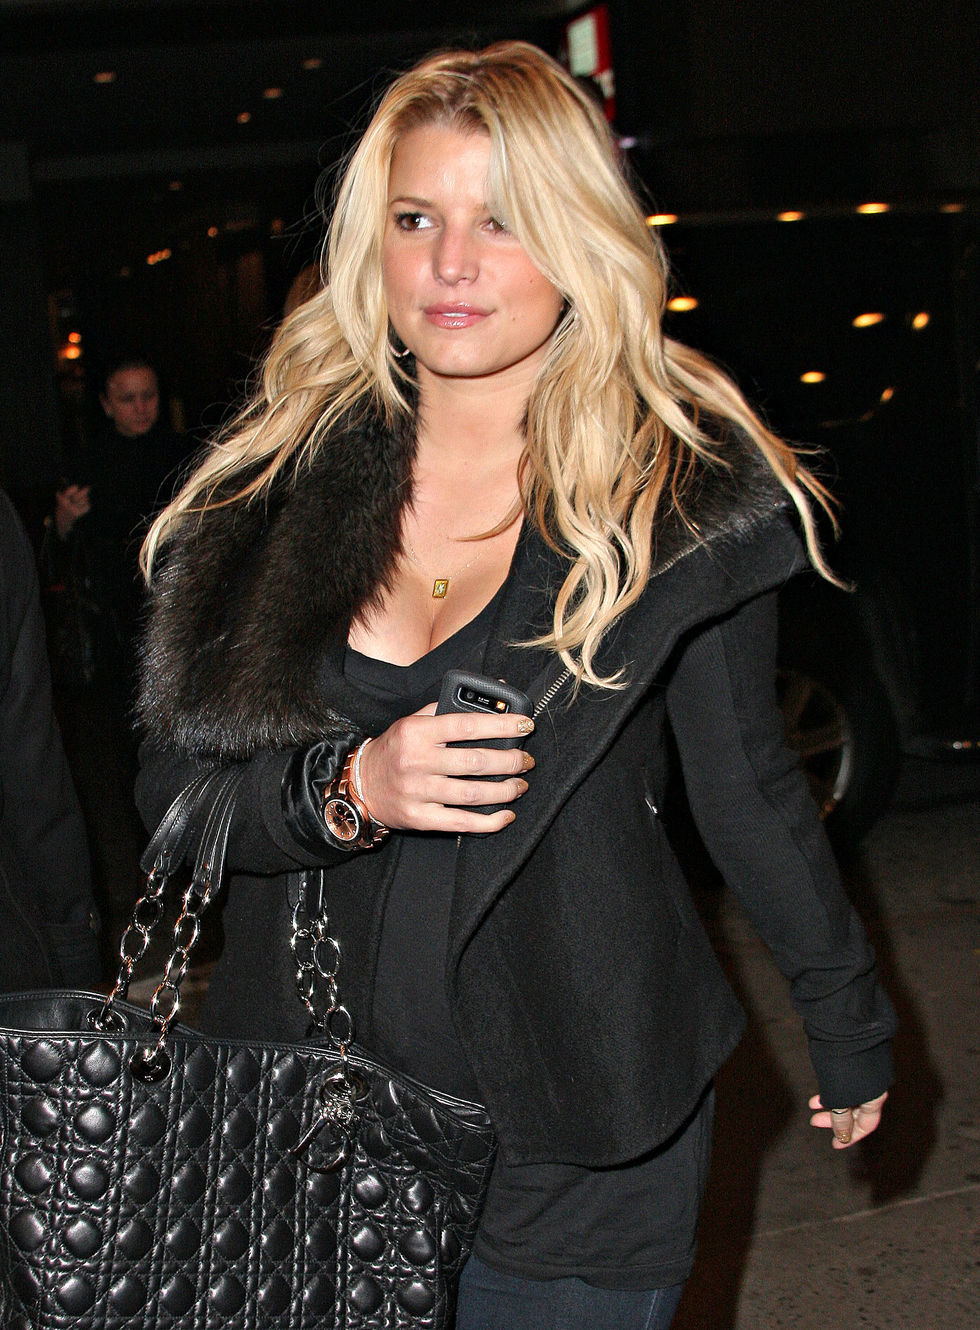 jessica-simpson-cleavage-candids-in-new-york-01